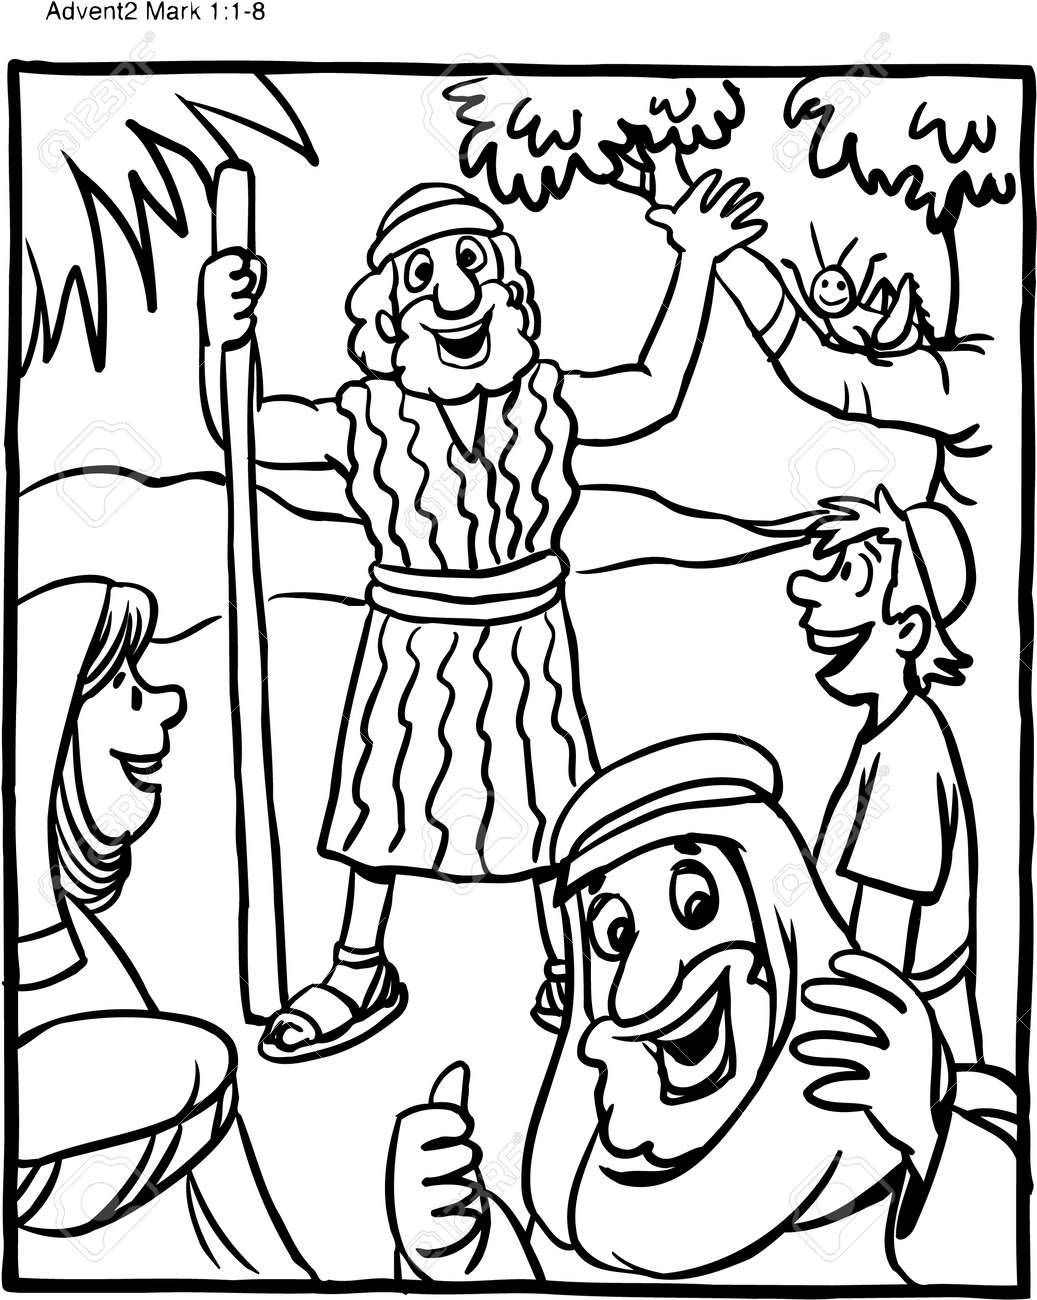 Puerto Rico Coloring Page New Saint John the Baptist Coloring ... | 1300x1036